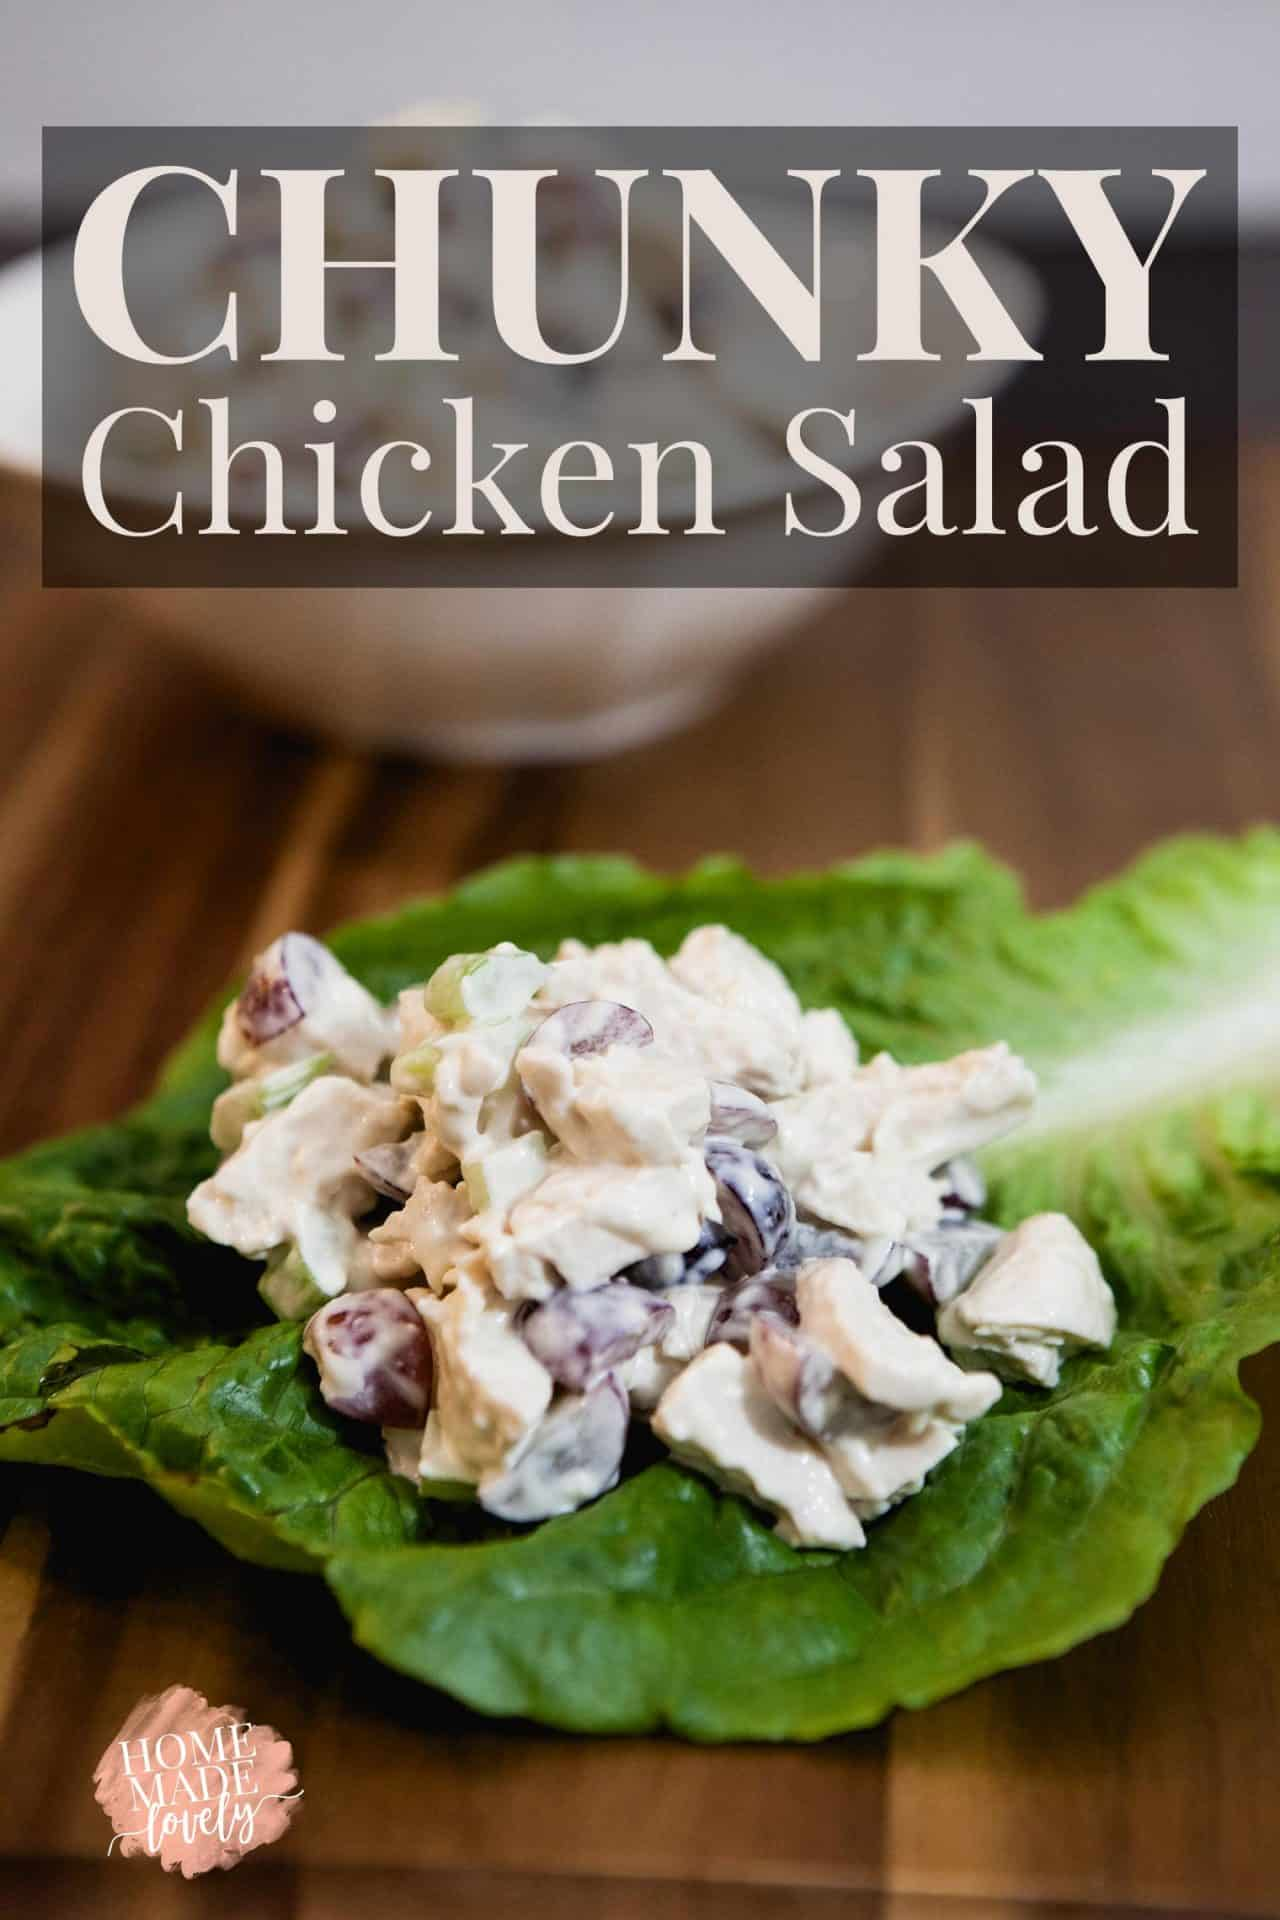 Chunky chicken salad in a lettuce wrap on a wood counter